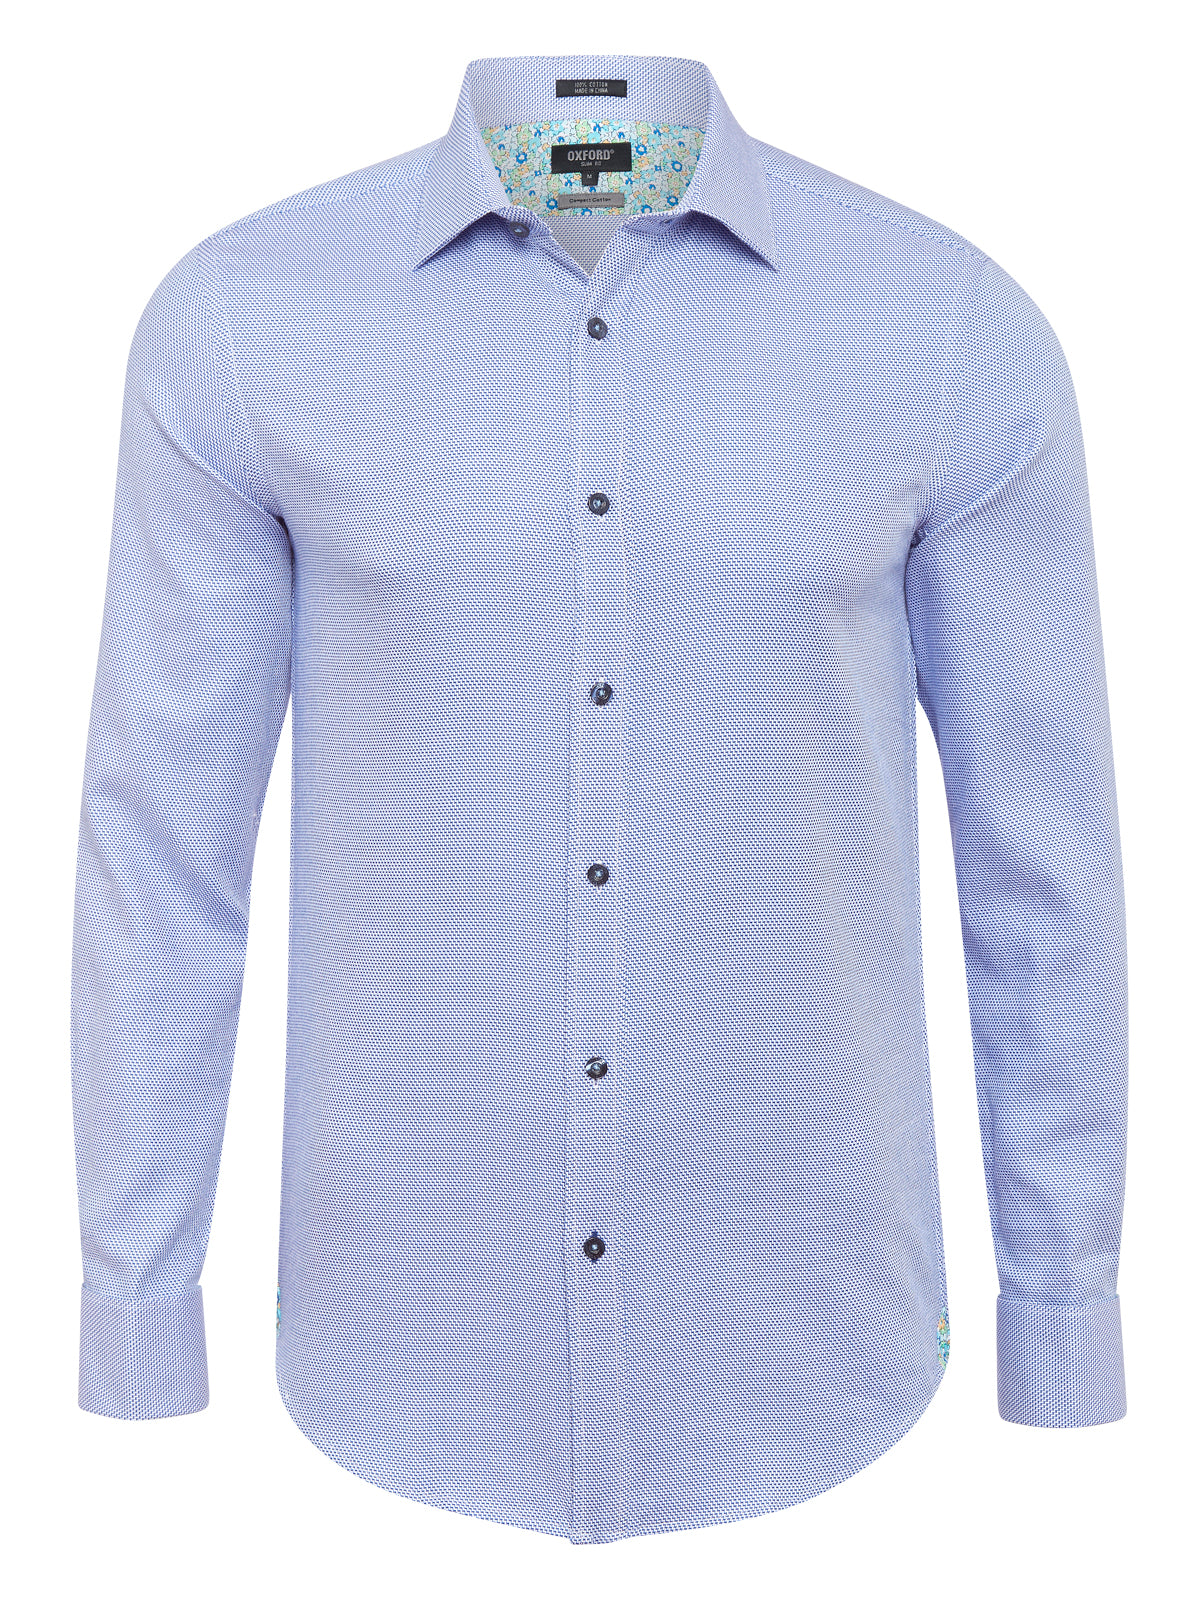 BECKTON DOBBY FRENCH CUFF SHIRT